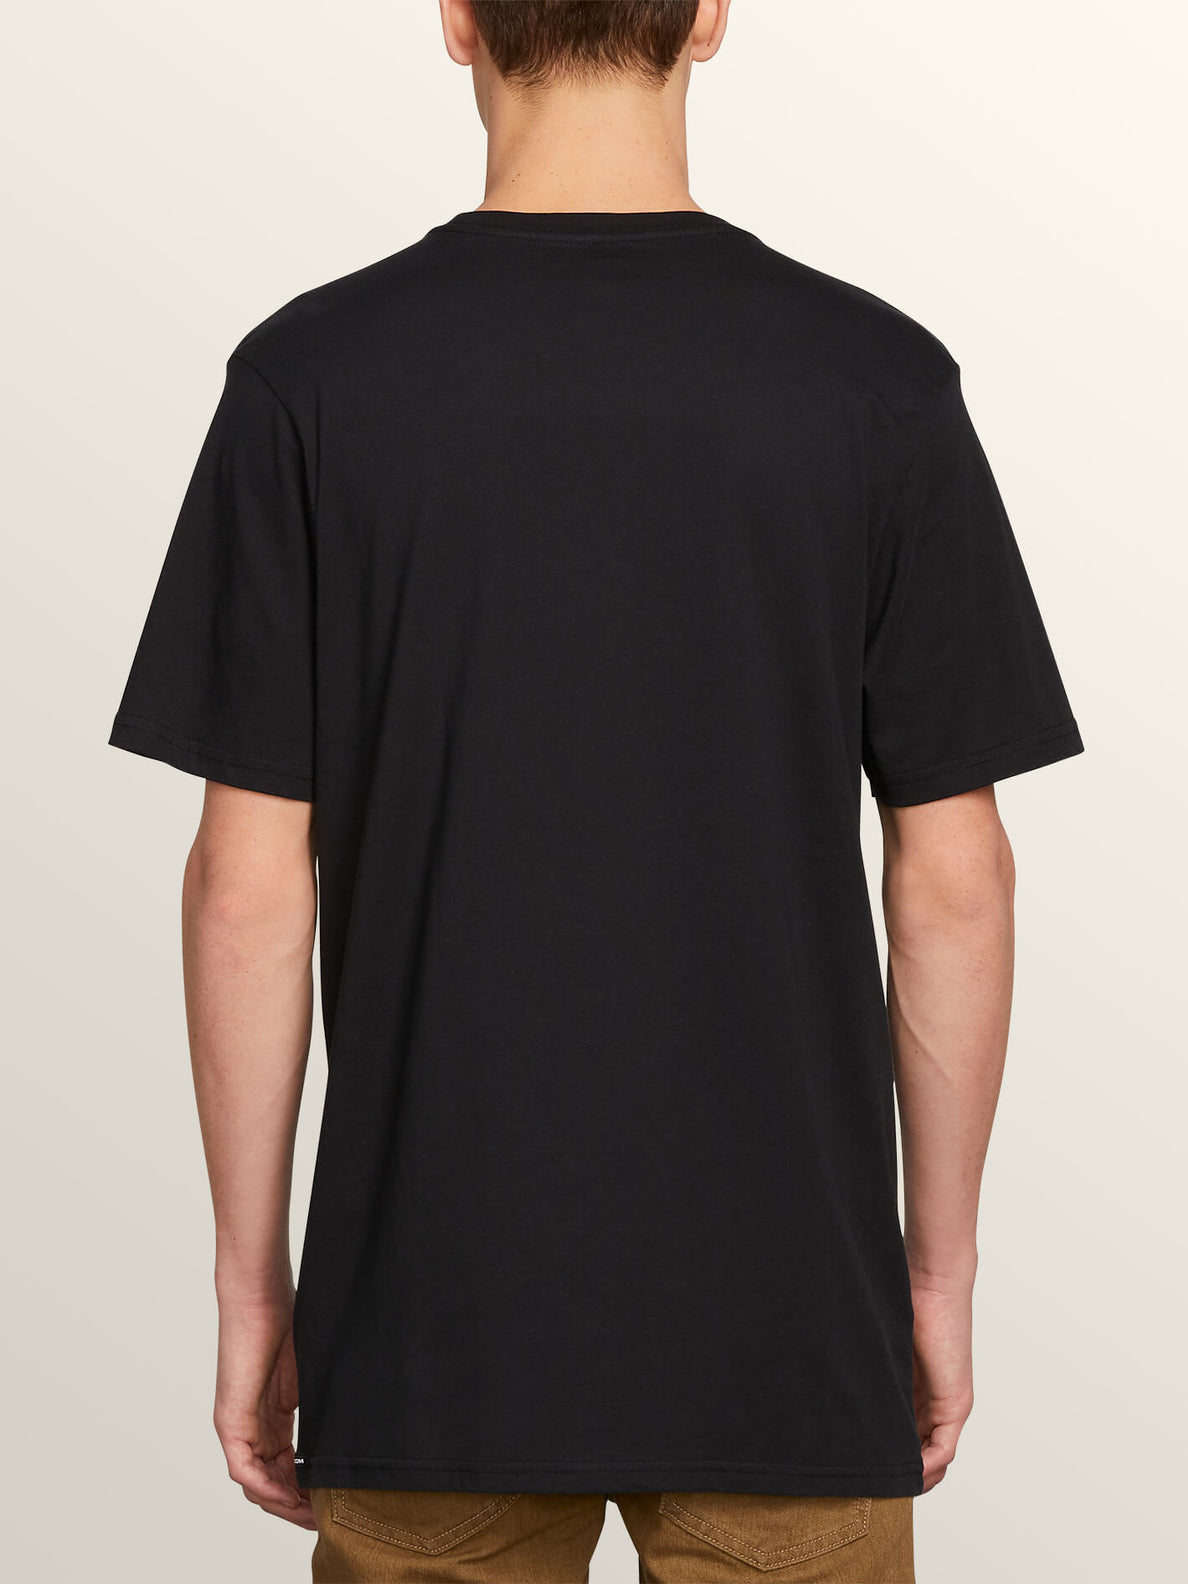 Oversight Short Sleeve Tee In Black, Back View